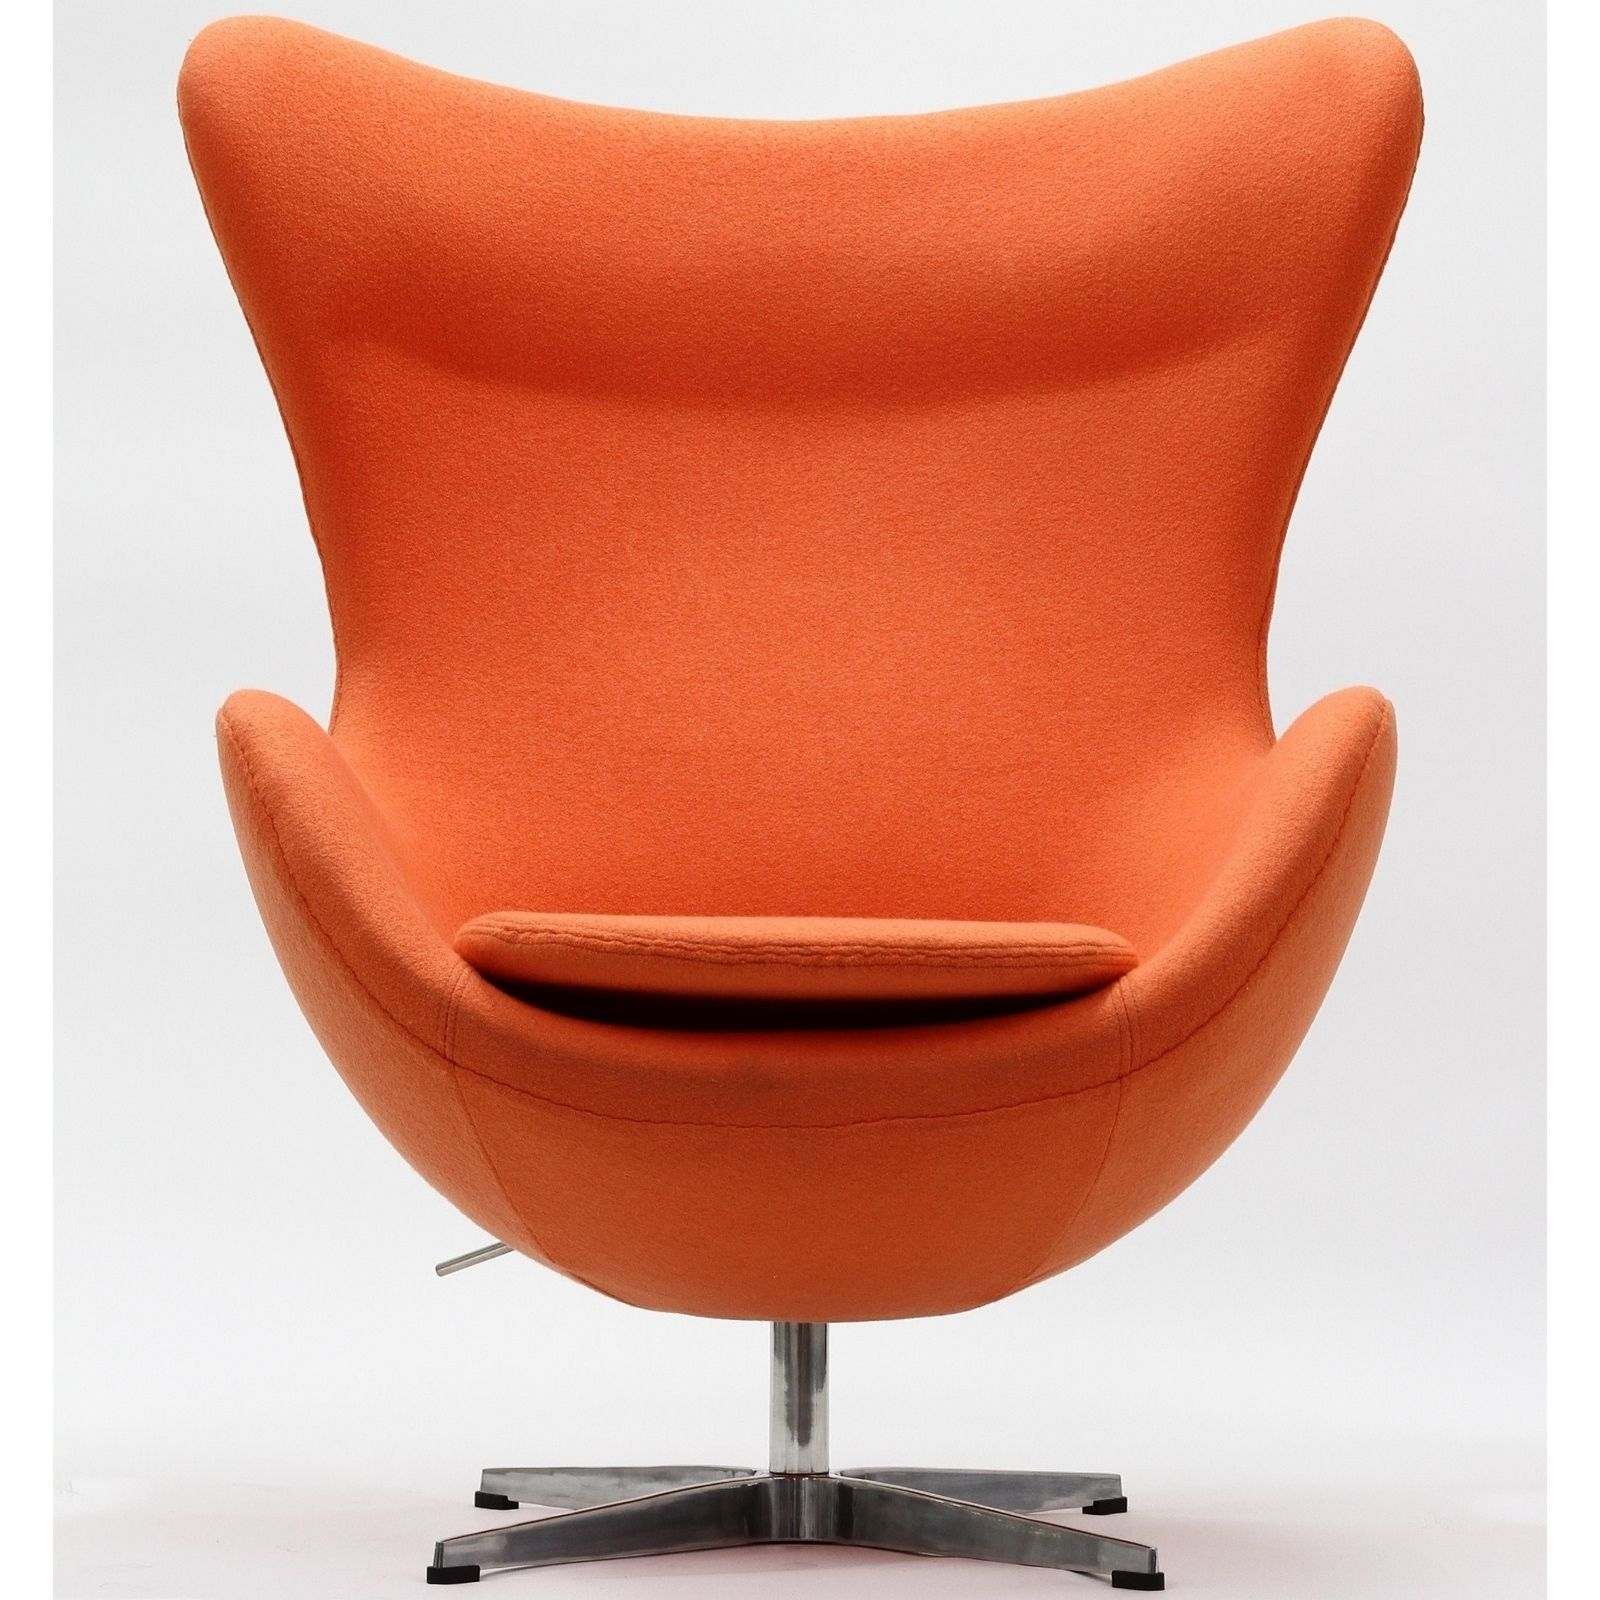 Arne Jacobsen Egg Chair This Chair Is Super Comfortable I Fall